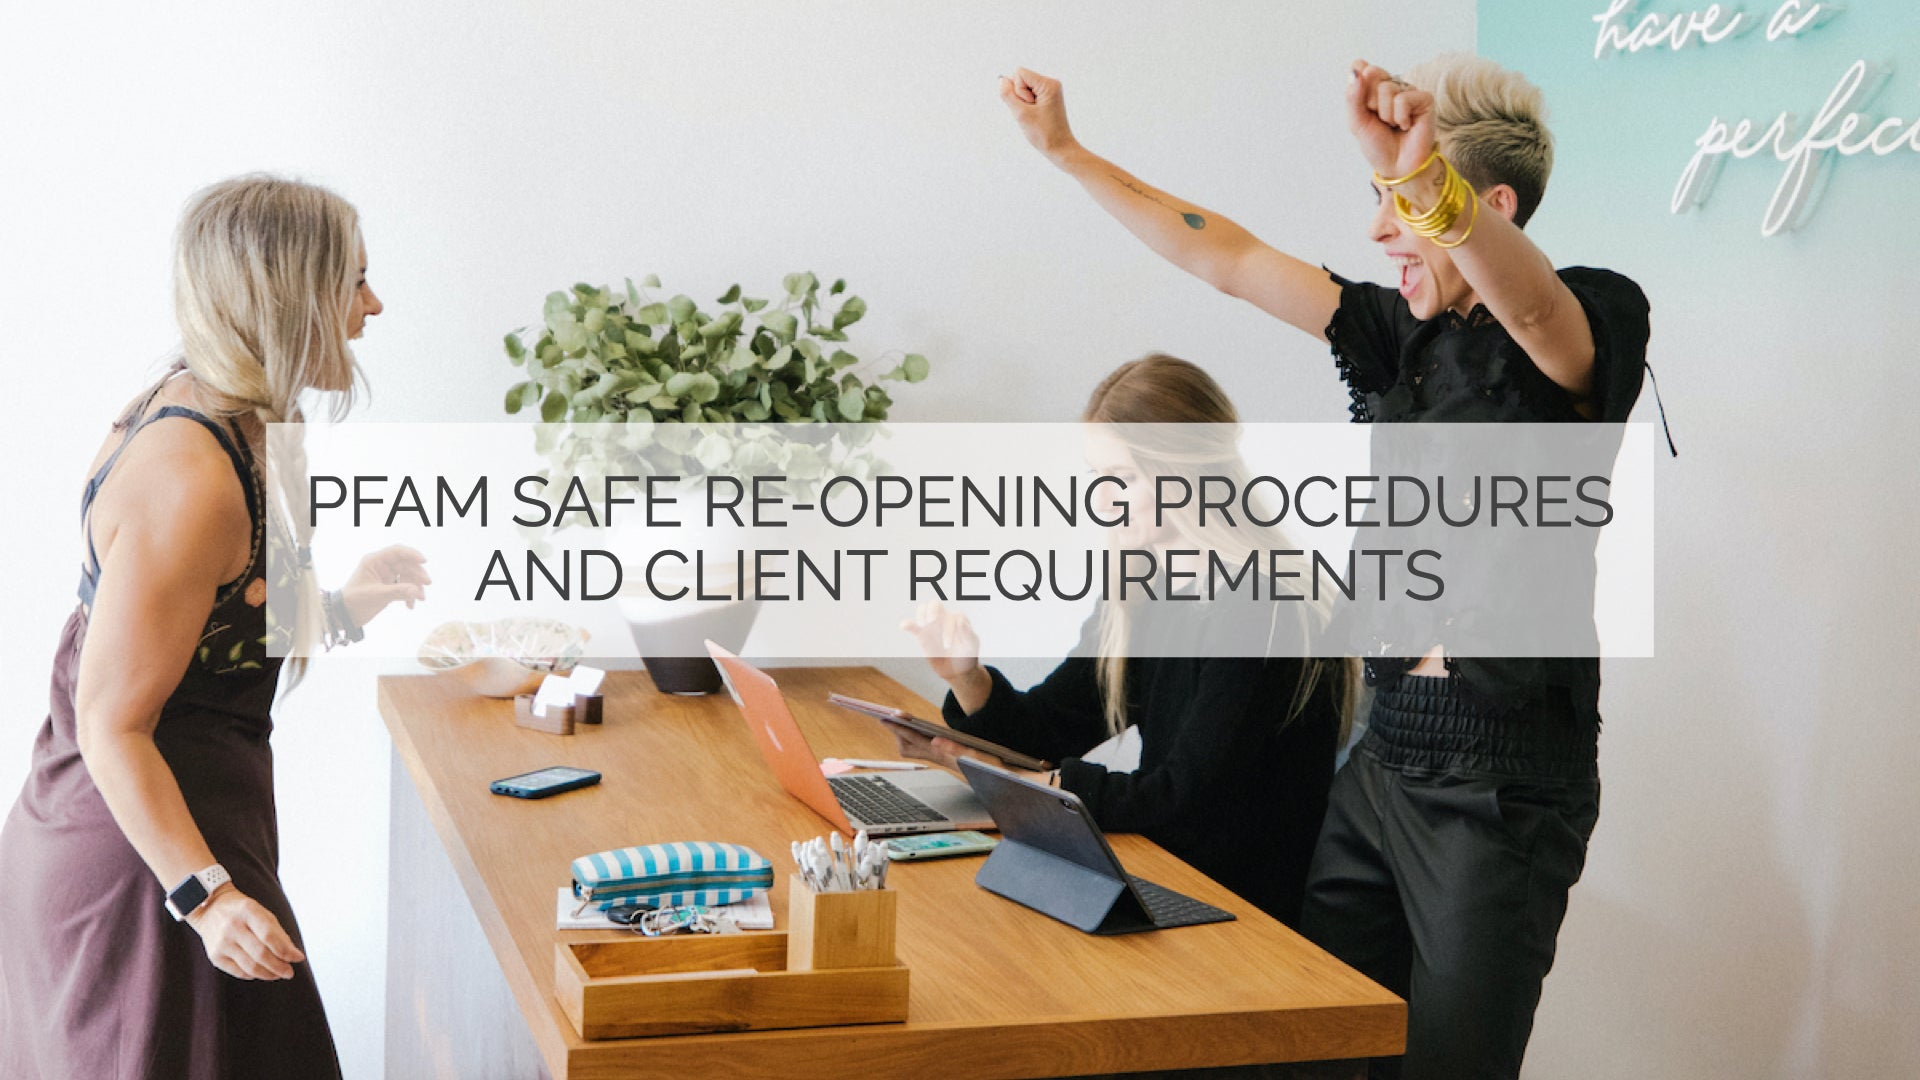 PFAM Safe Re-Opening Procedures and Client Requirements